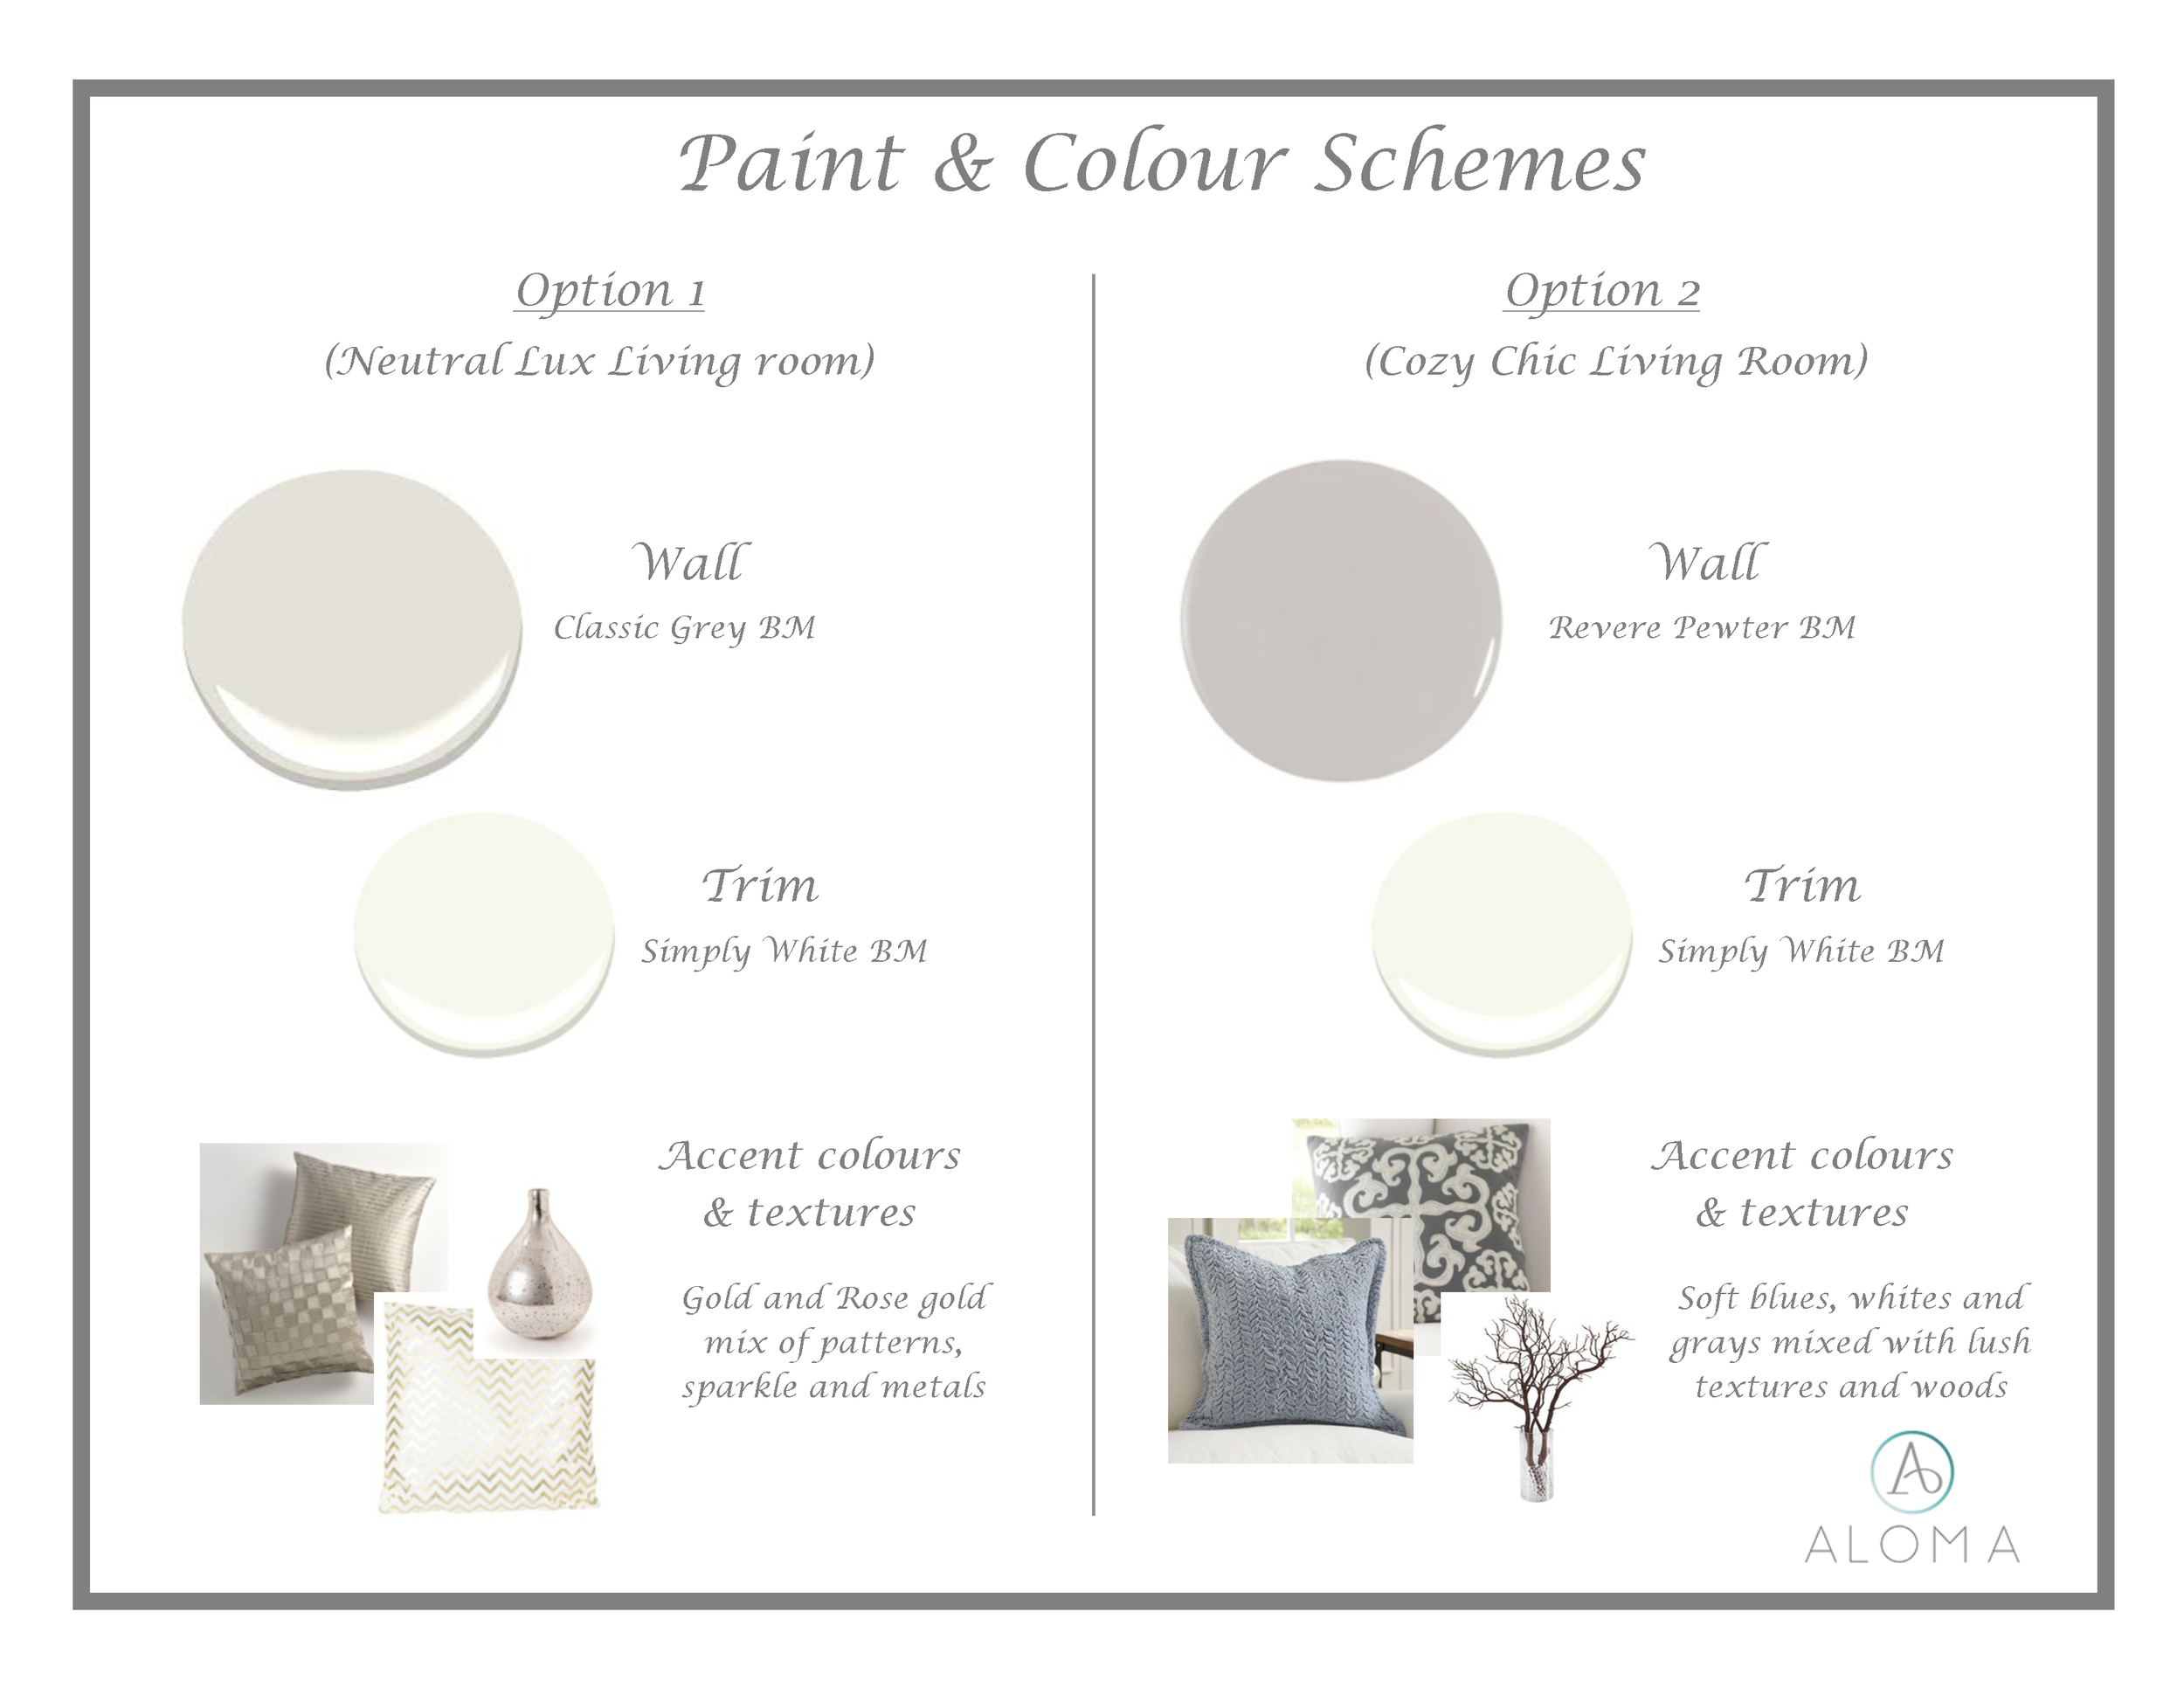 Paint & Colour Schemes by Aloma Home Staging & Design